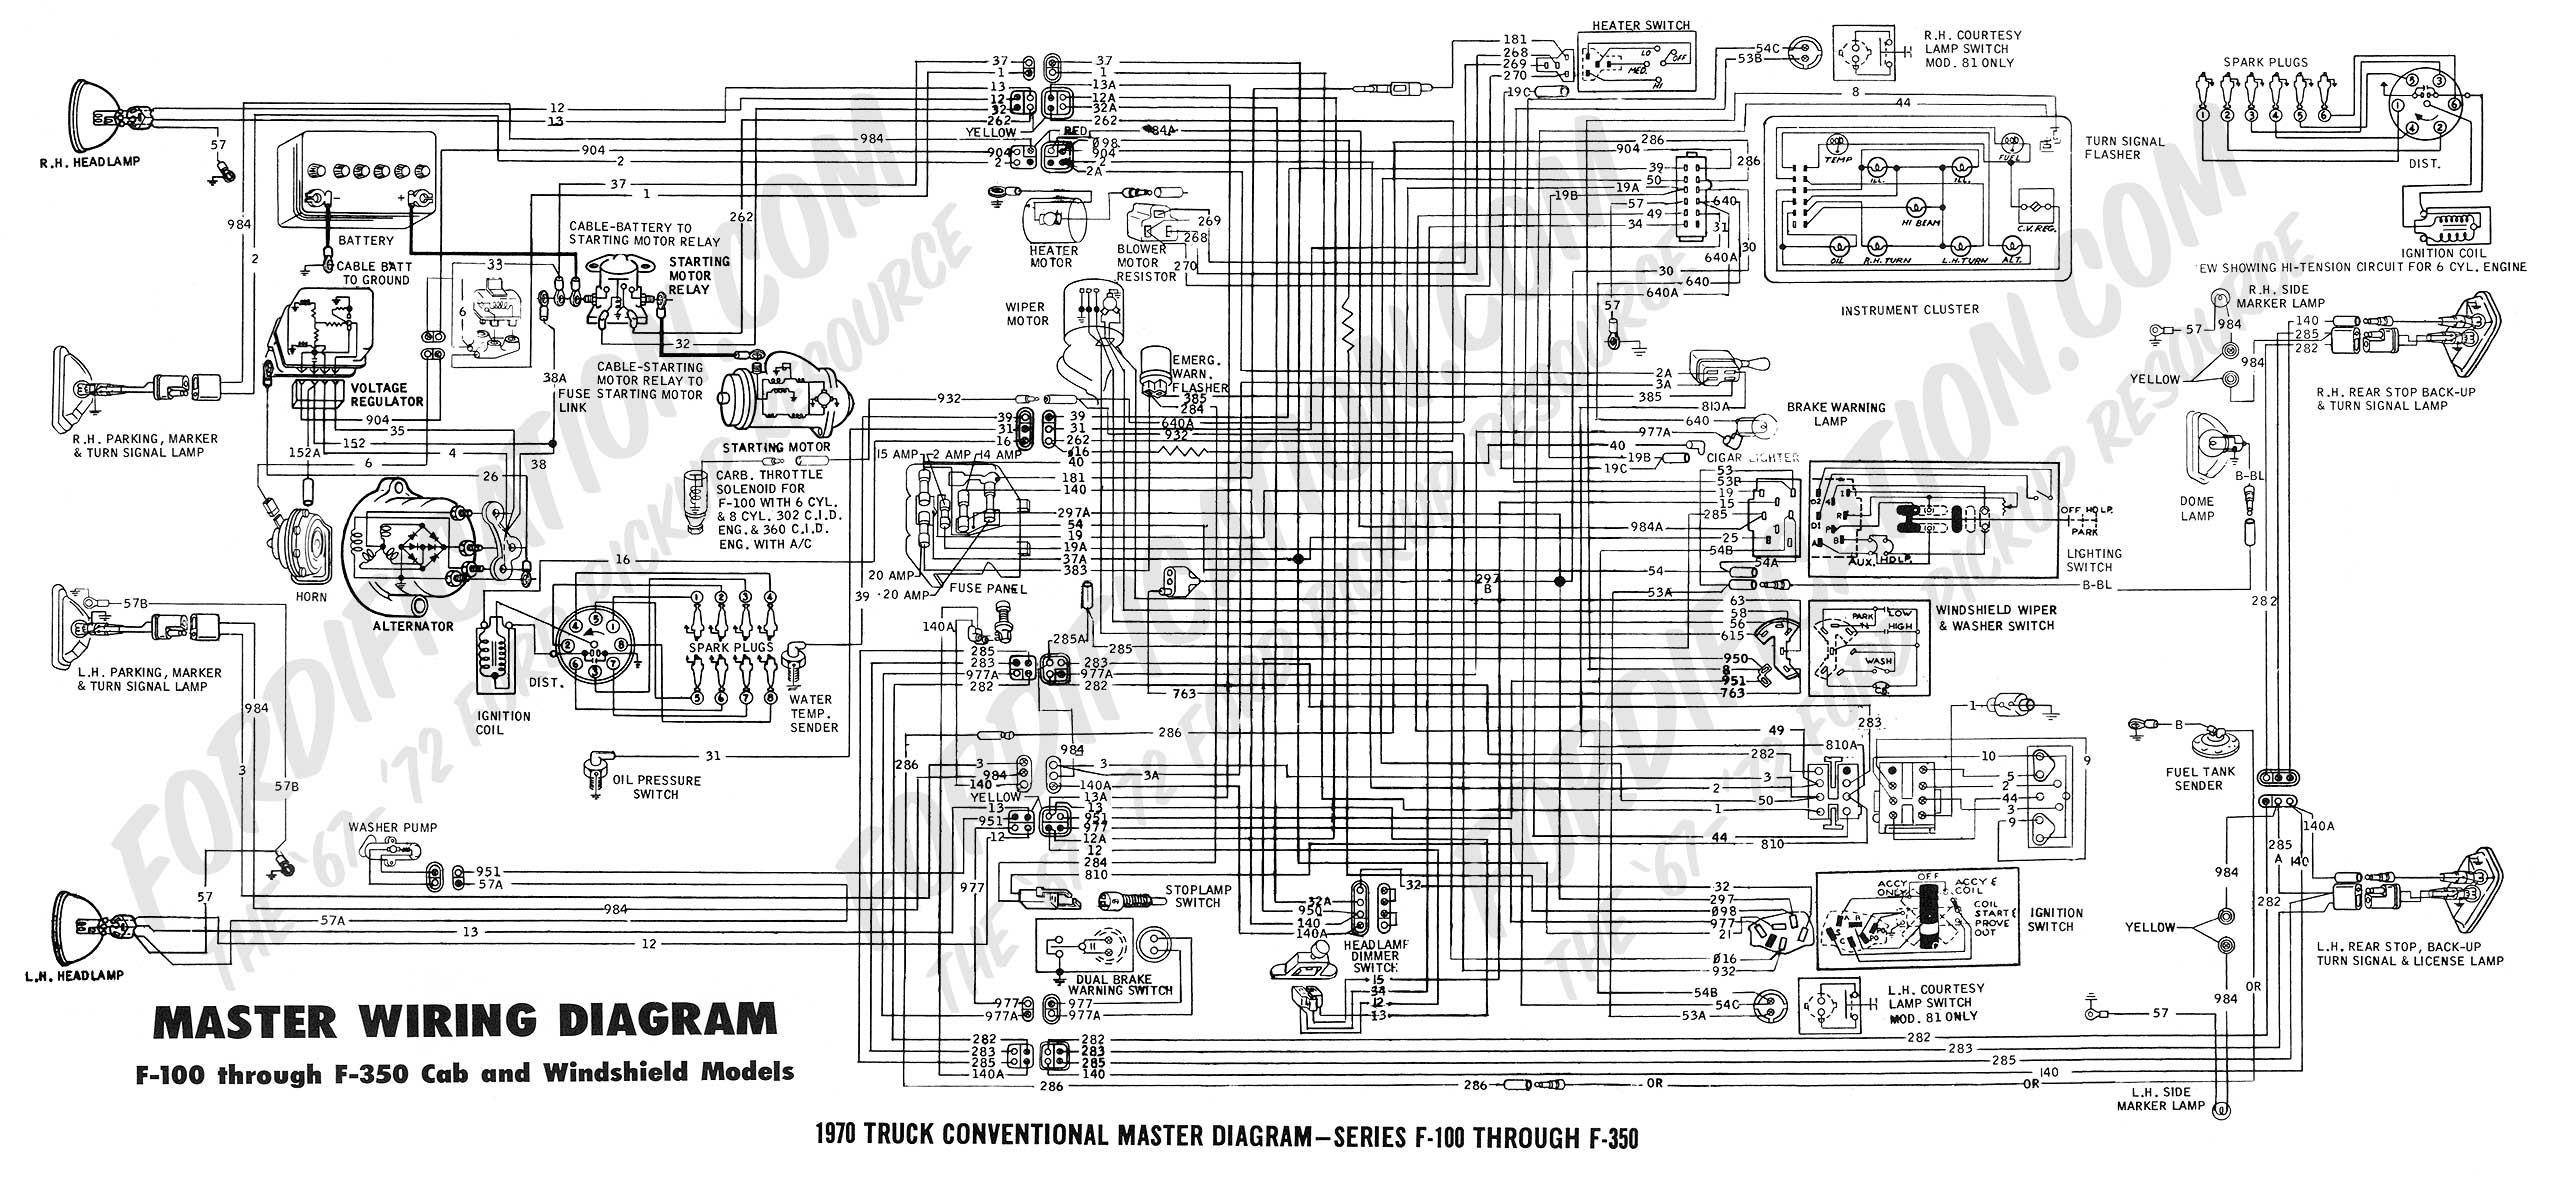 wiring diagram 70_master f450 wiring diagram f250 wiring diagram 2016 \u2022 wiring diagrams j 1990 mustang headlight wiring diagram at gsmx.co